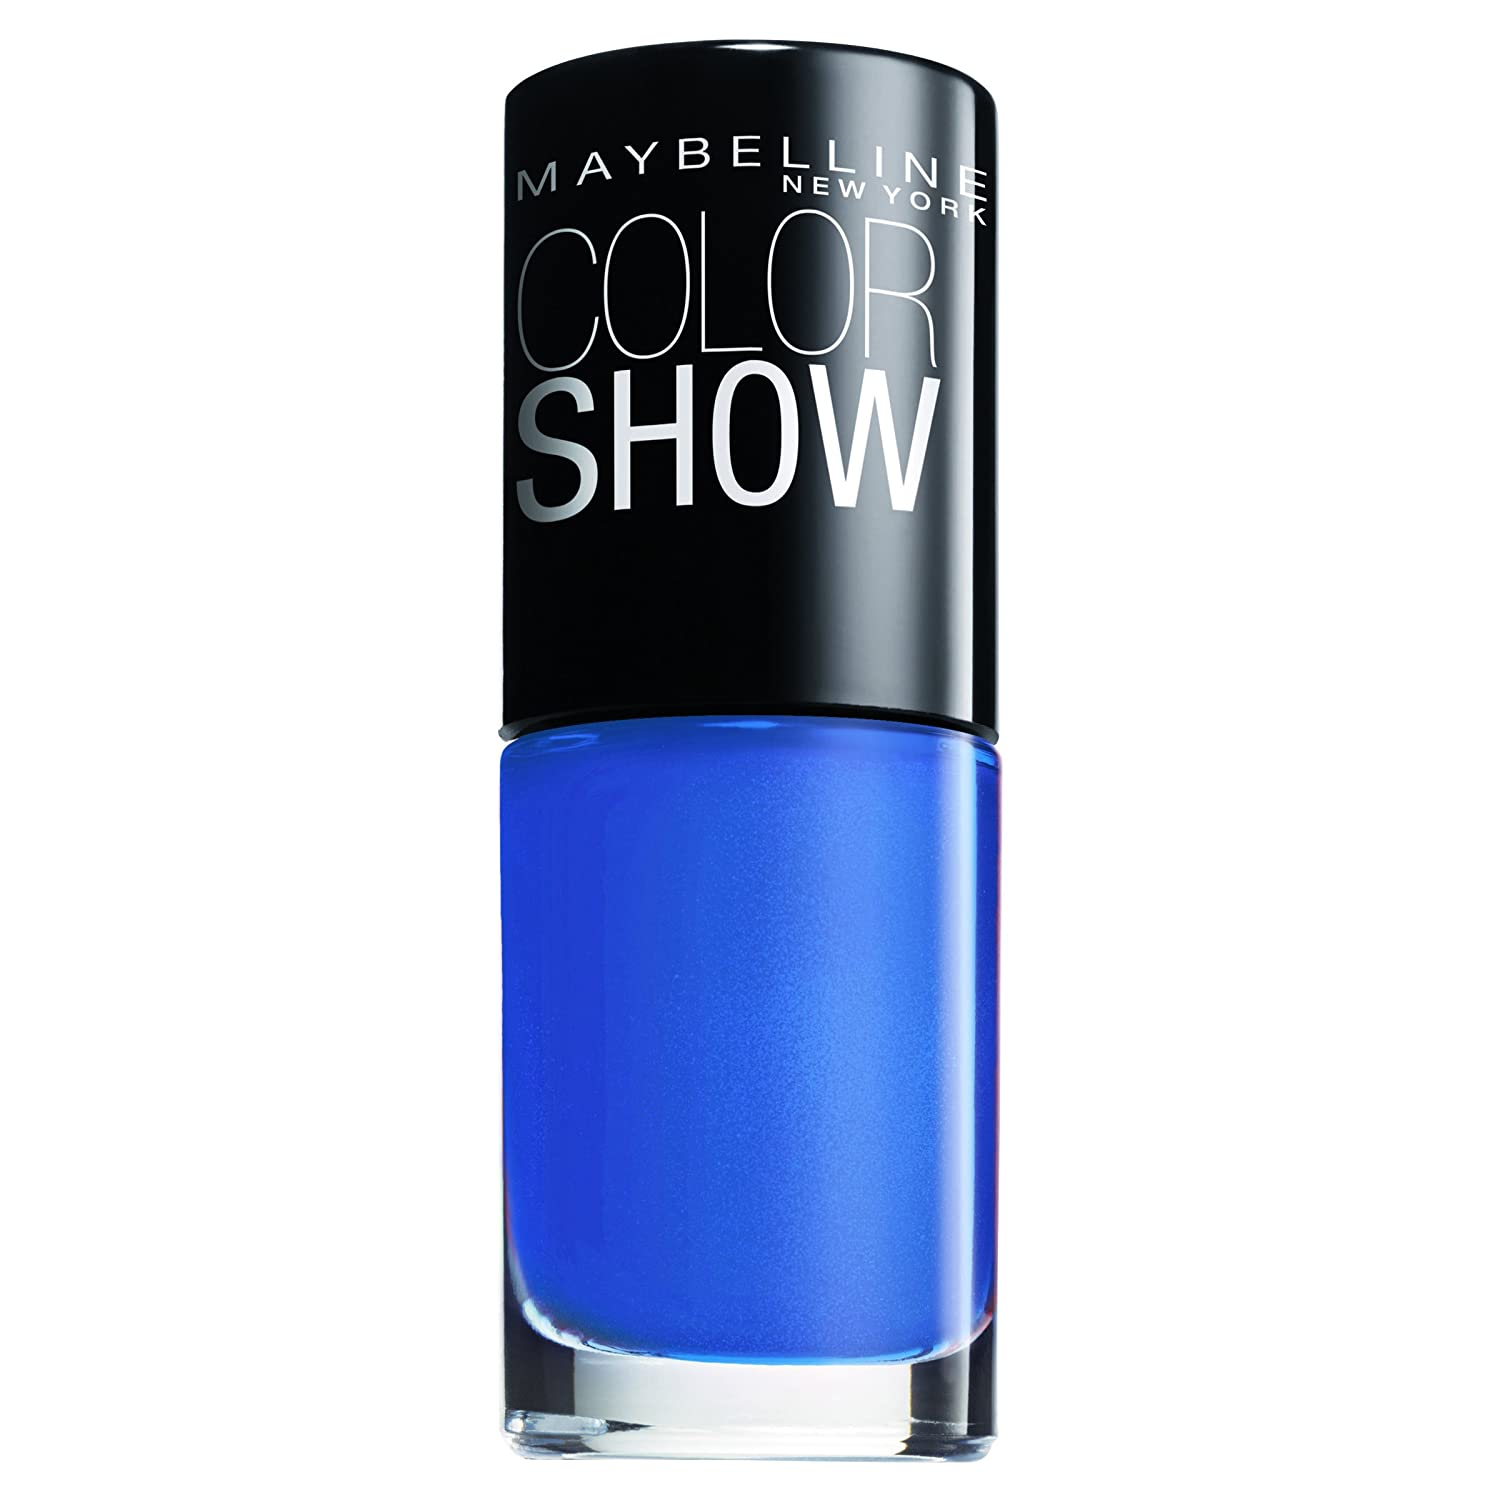 Maybelline New York Color Show Smalto Asciugatura Rapida, 6 Bubblicious 30097186